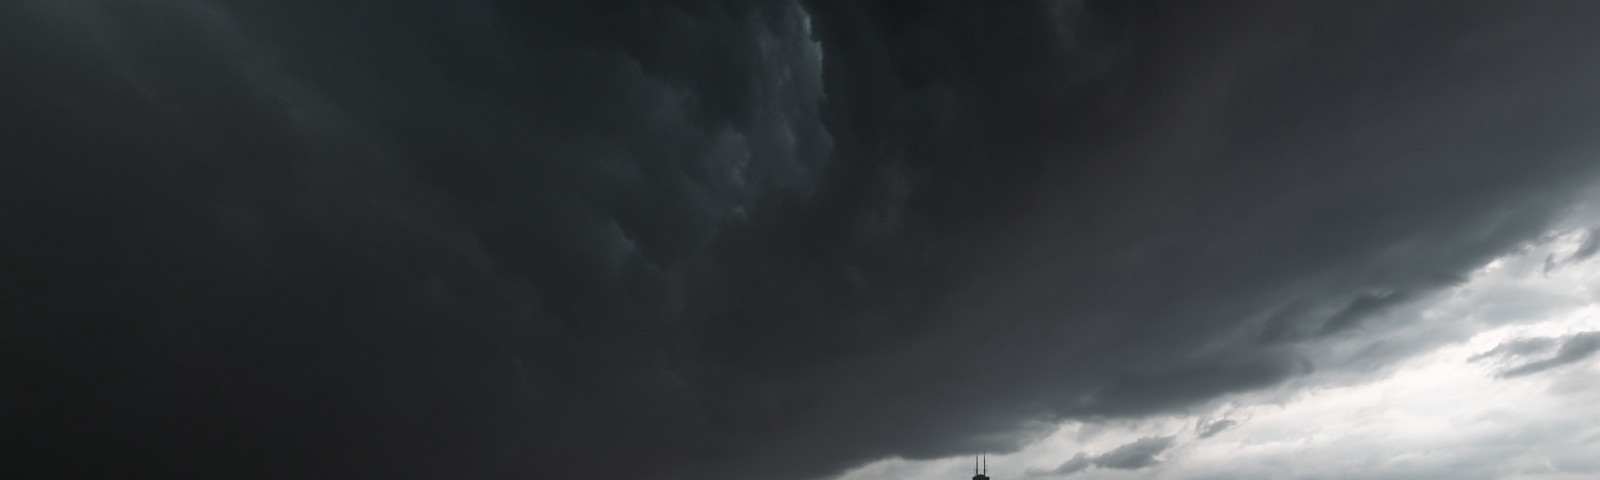 Photo by Nick Ulivieri from Chicago's Derecho Storm (8.10.20)